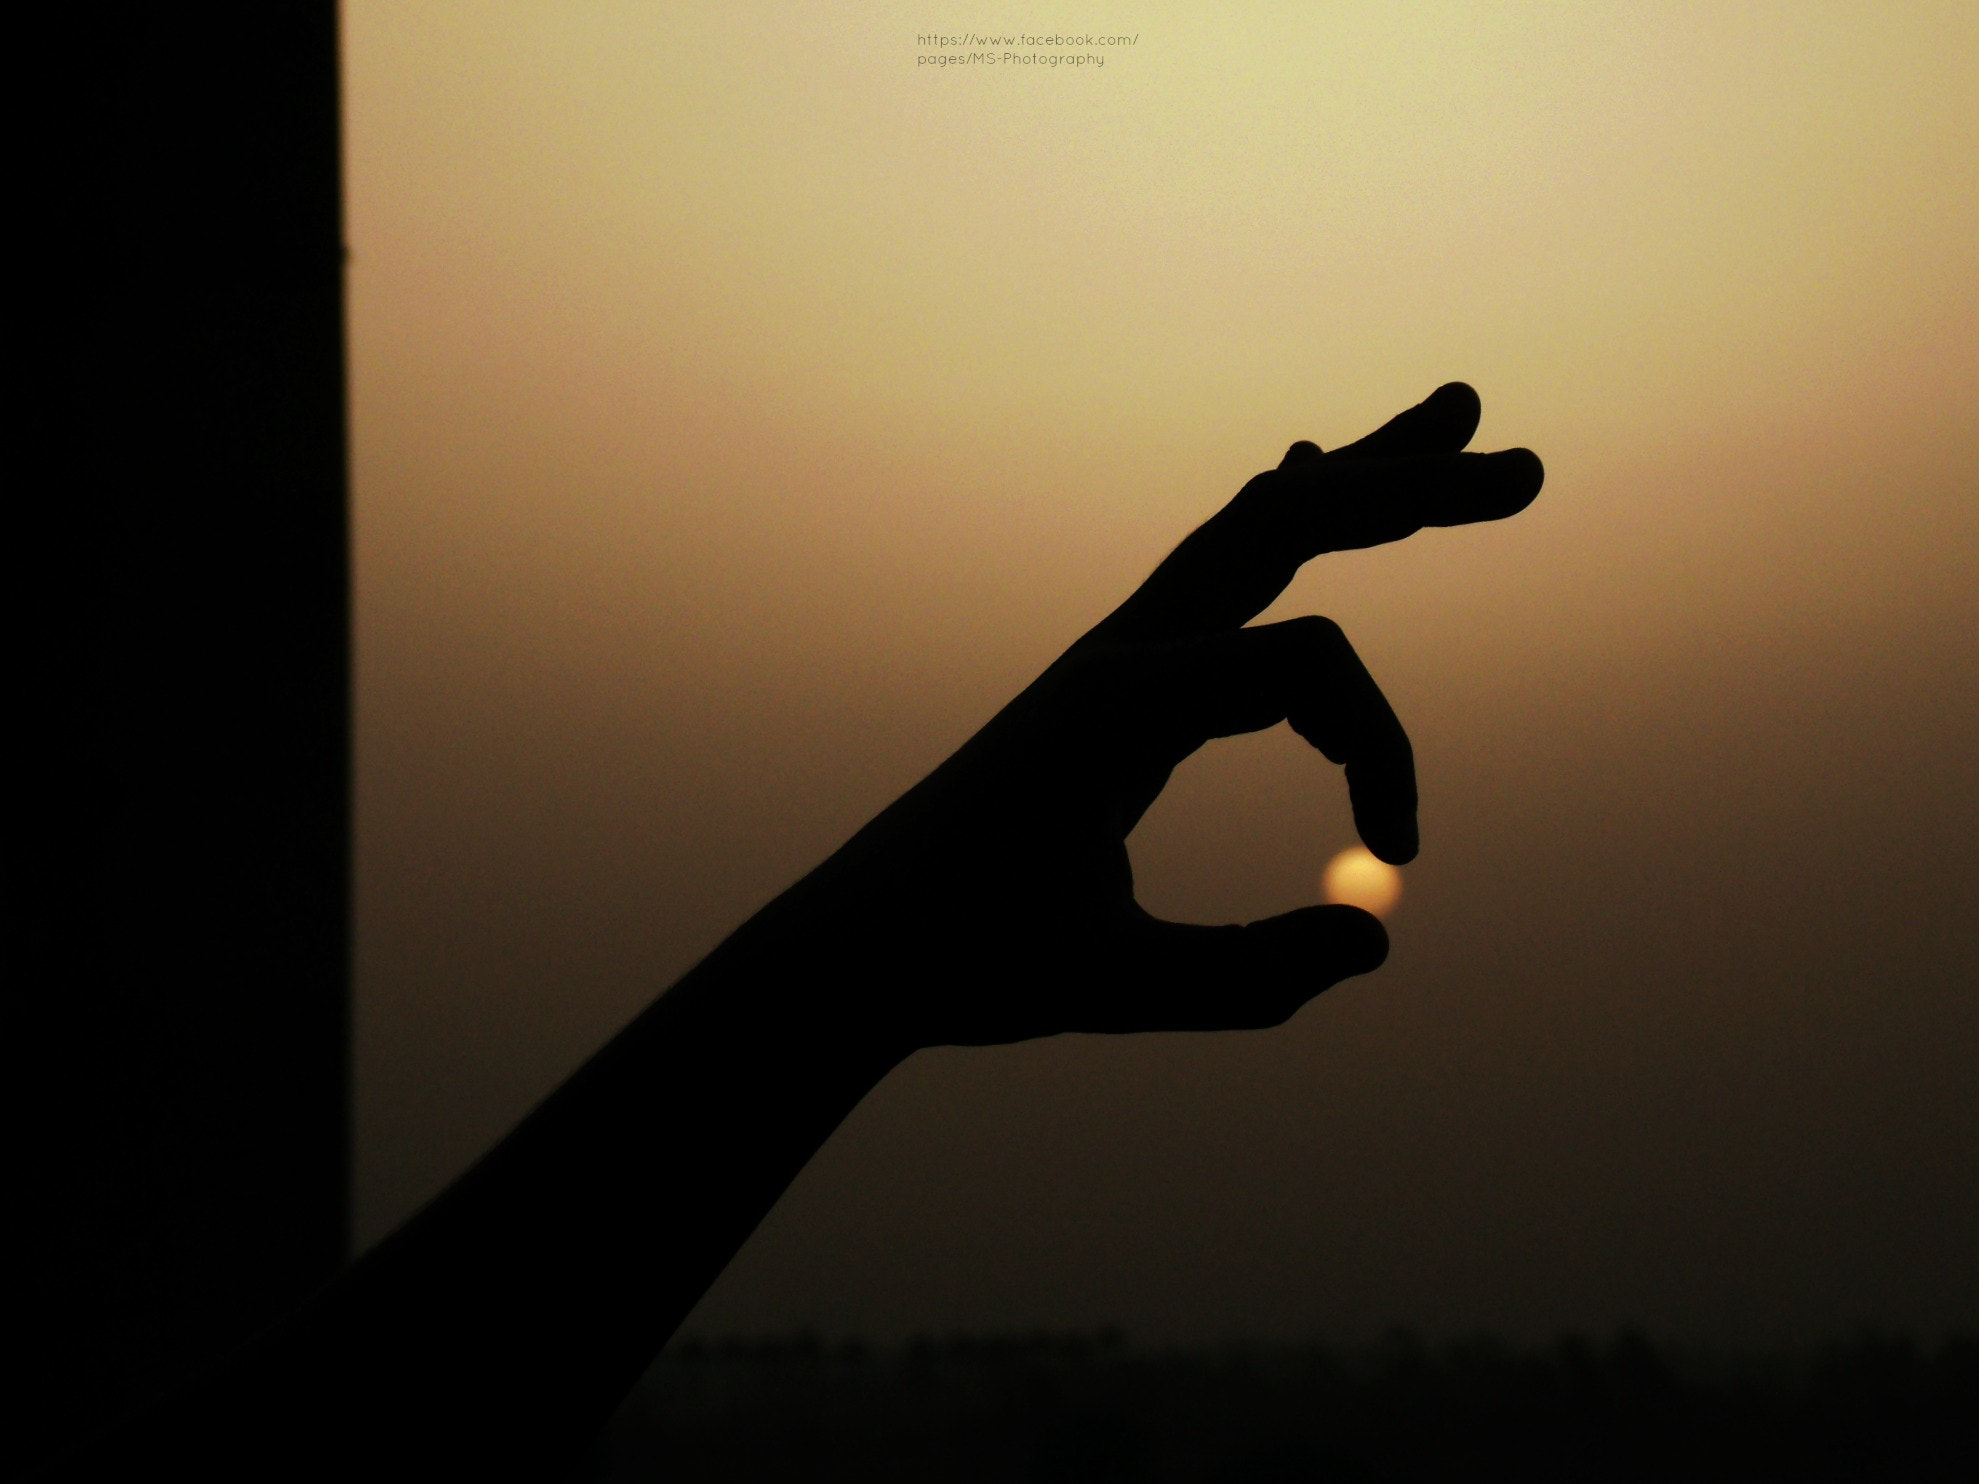 Photograph IMG 6  by Mohamed Radwan on 500px